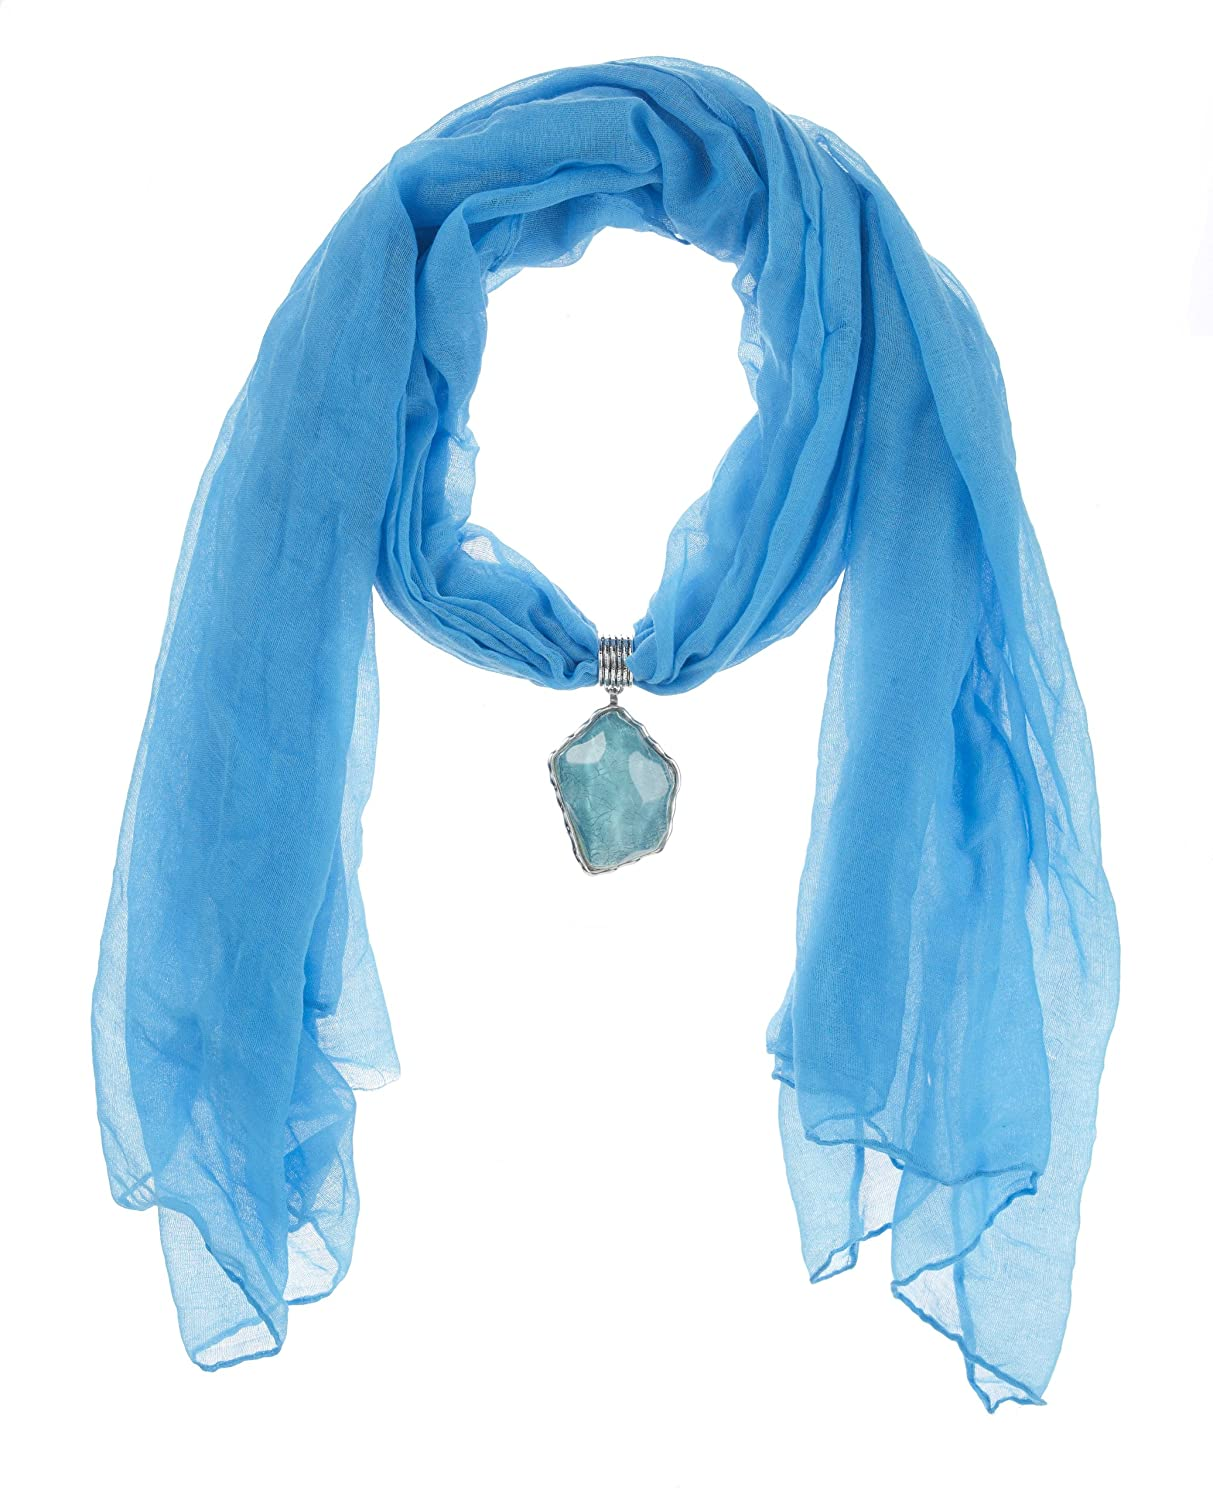 Blue Jeweled Scarf by Ganz